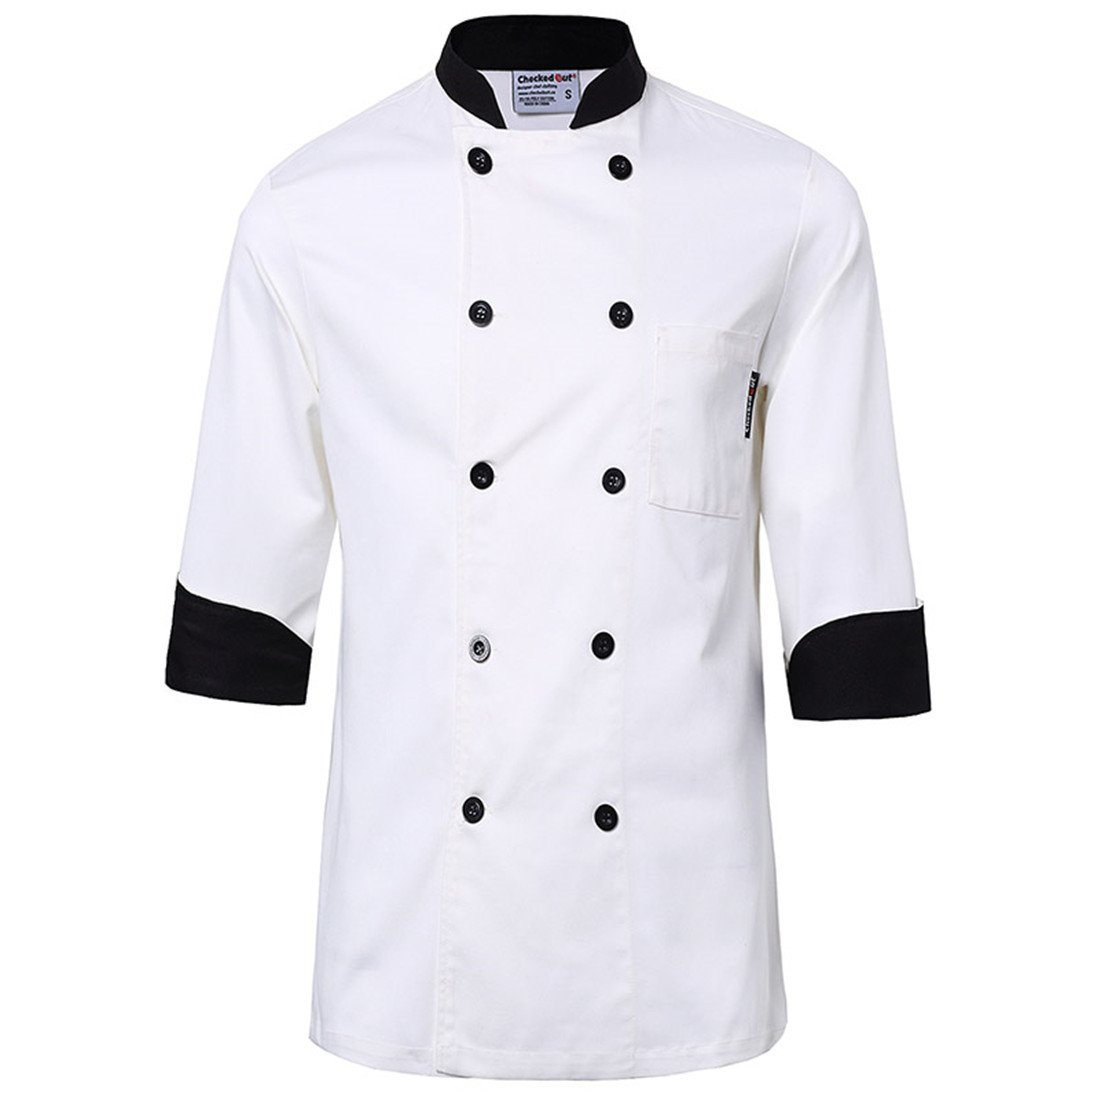 White chef uniforms unisex long and short sleeve coat catering jackets